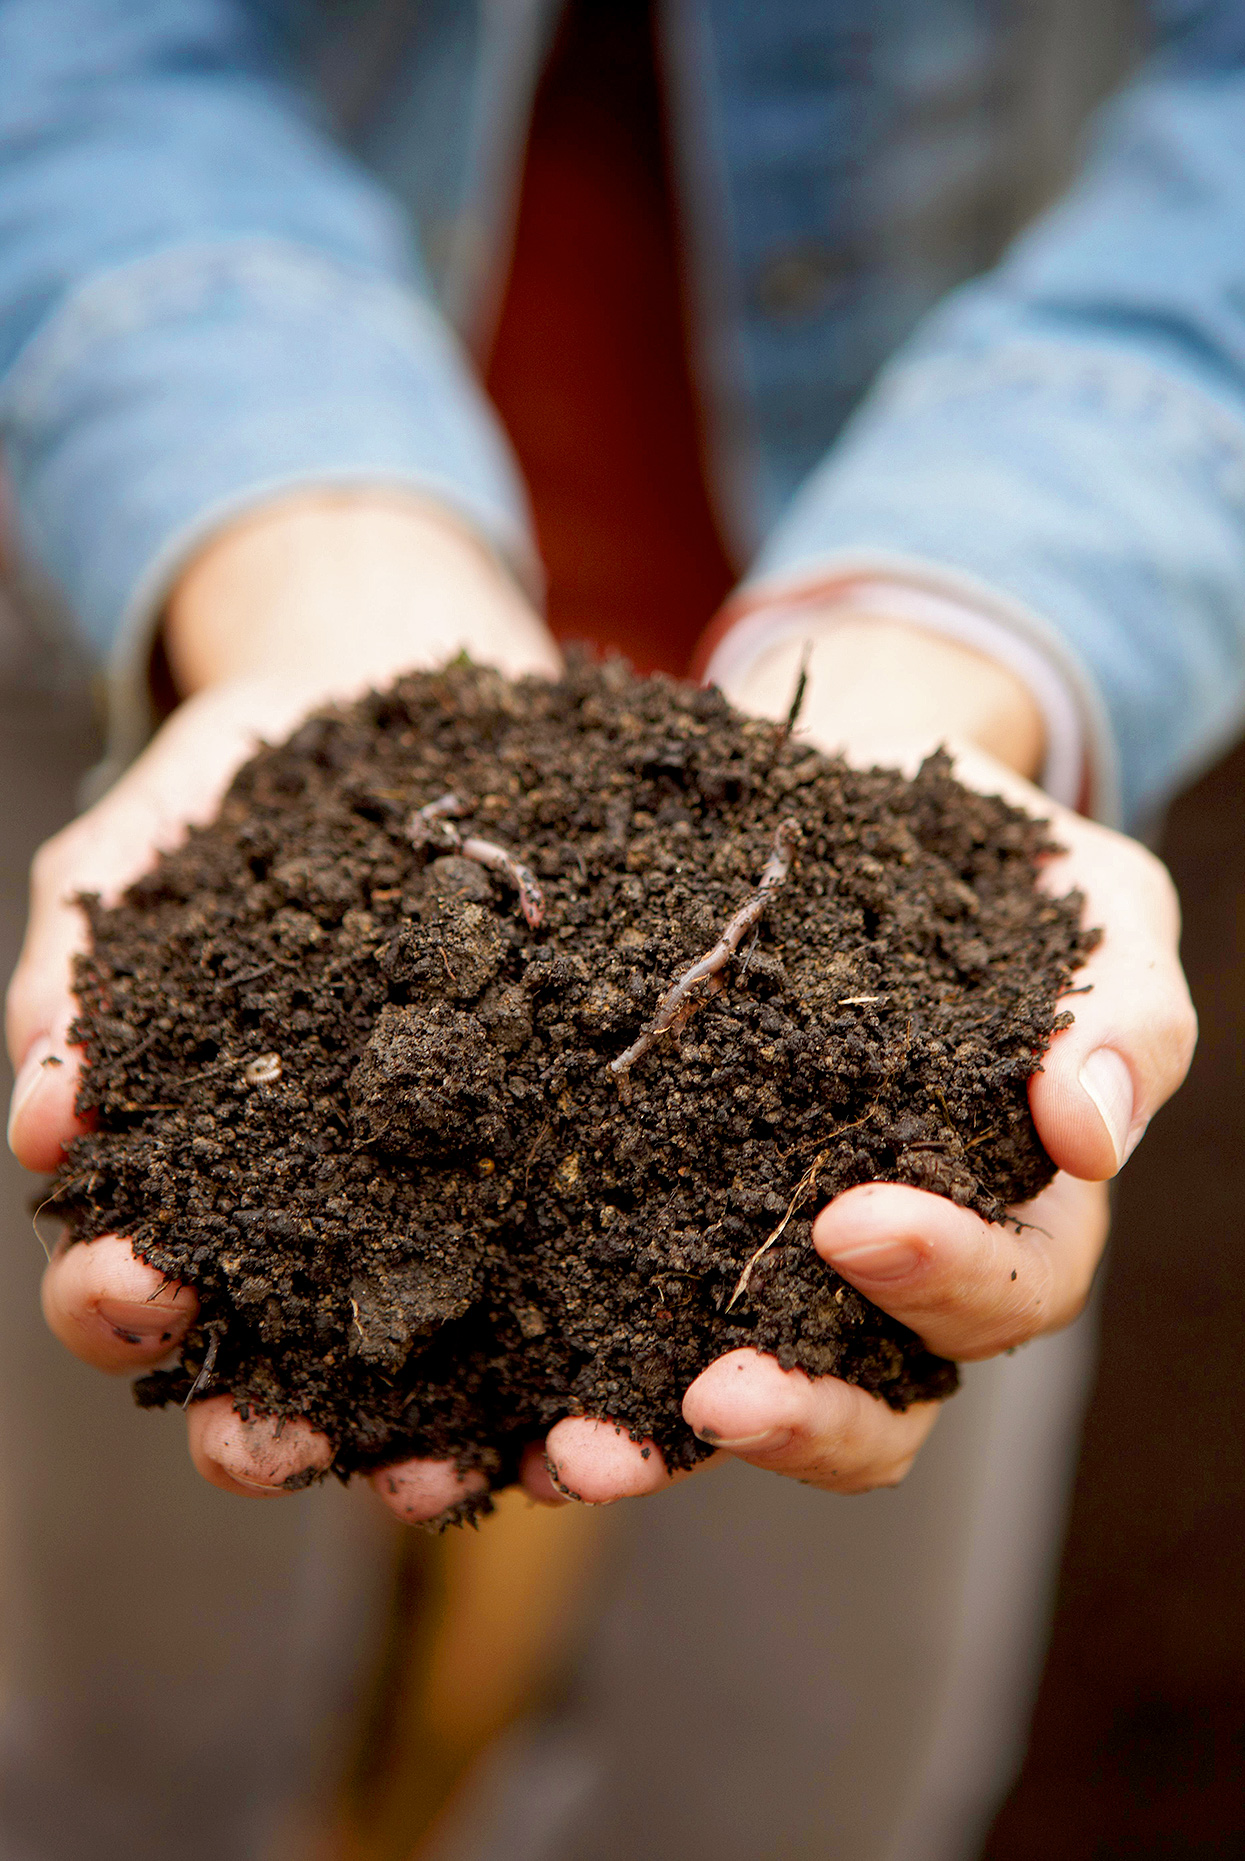 hands holding organic material for soil